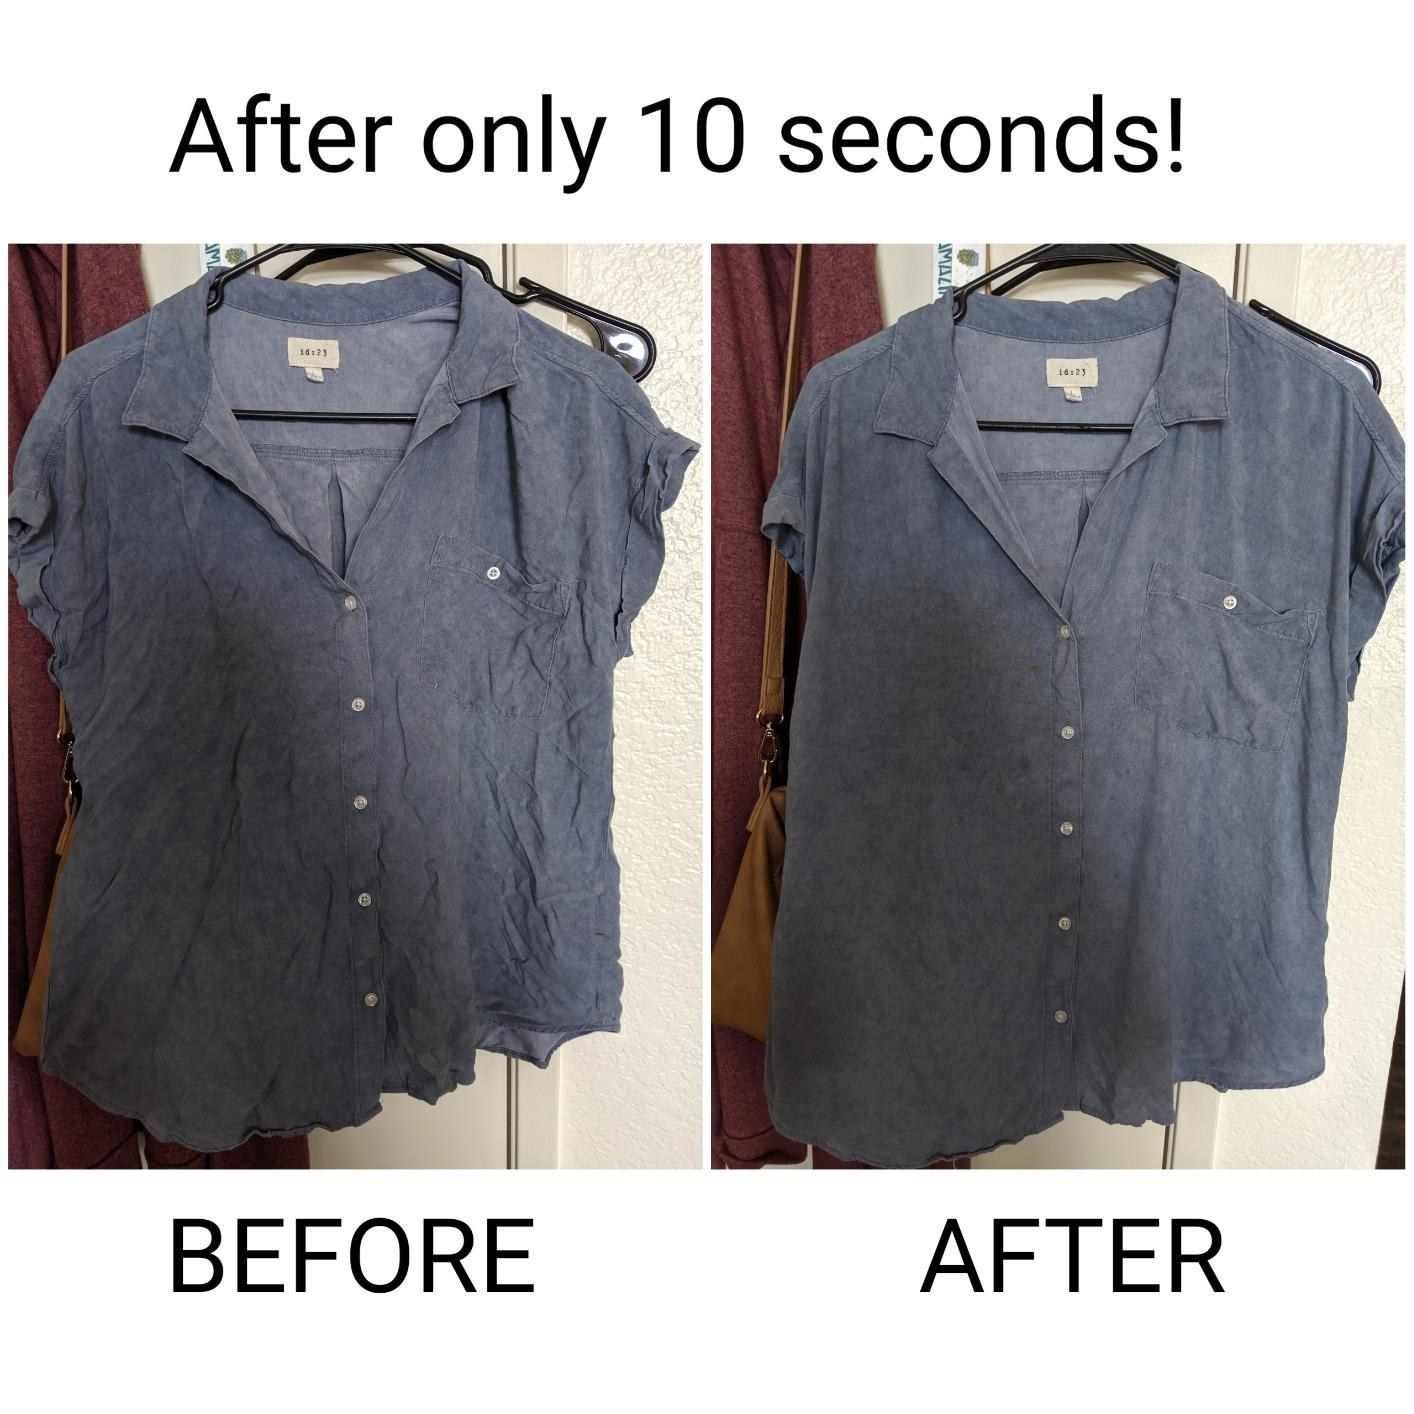 a shirt with wrinkles before the spray and after the spray with no wrinkles